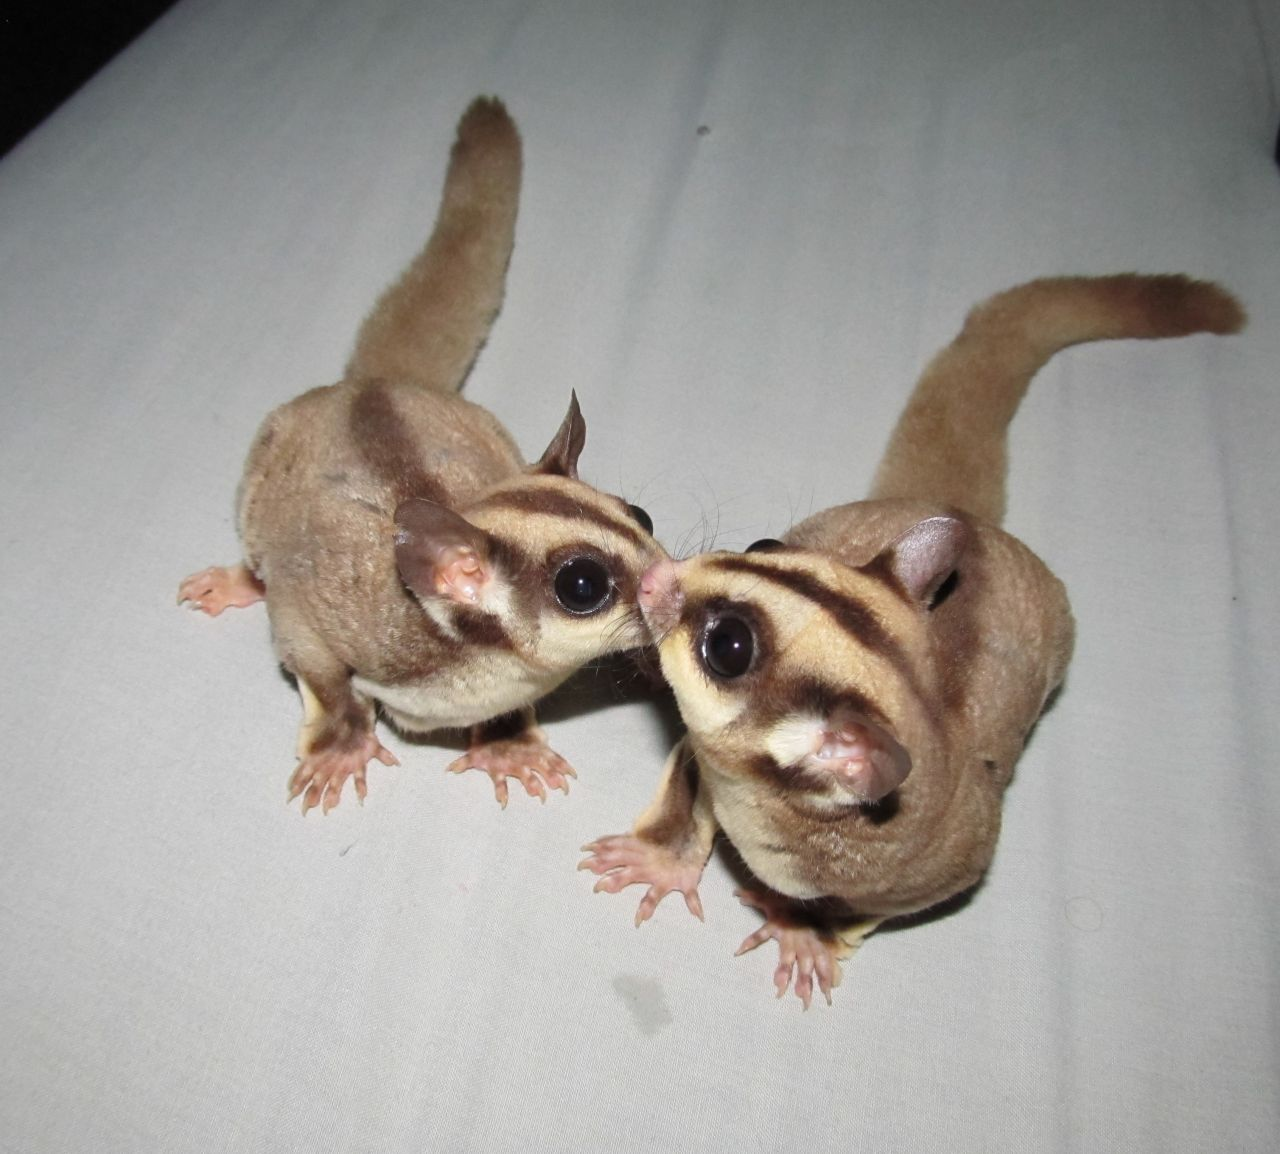 Sugar glider baby photos